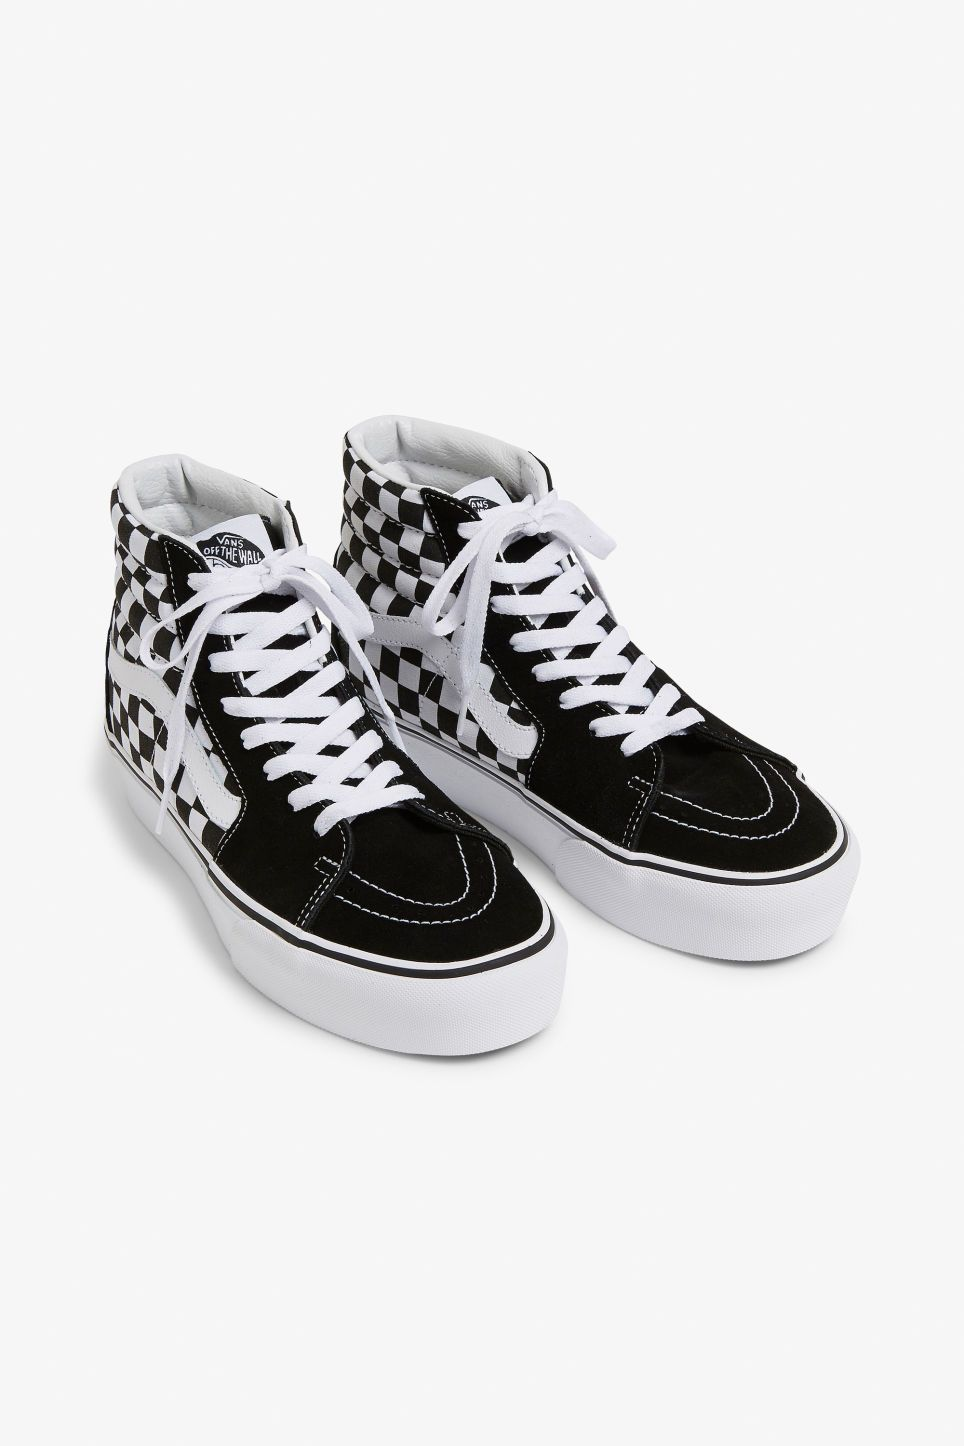 16c9ce2476 Vans SK8-HI platform 2.0 - A pair of fab lace-up Vans featuring a high top